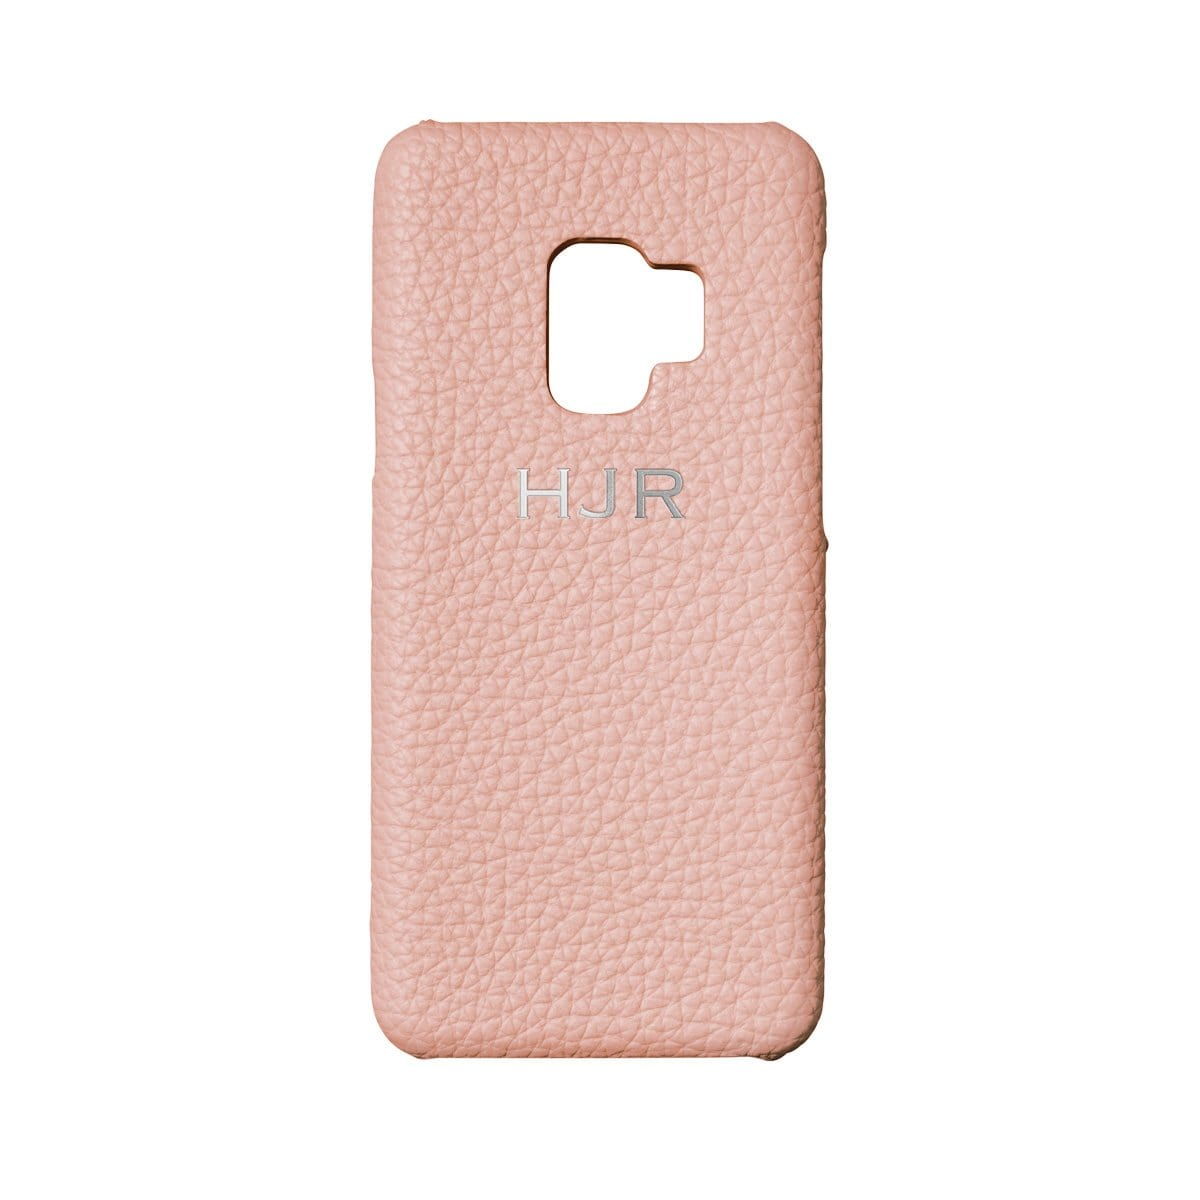 Blush Pink Phone Case (Samsung 9)